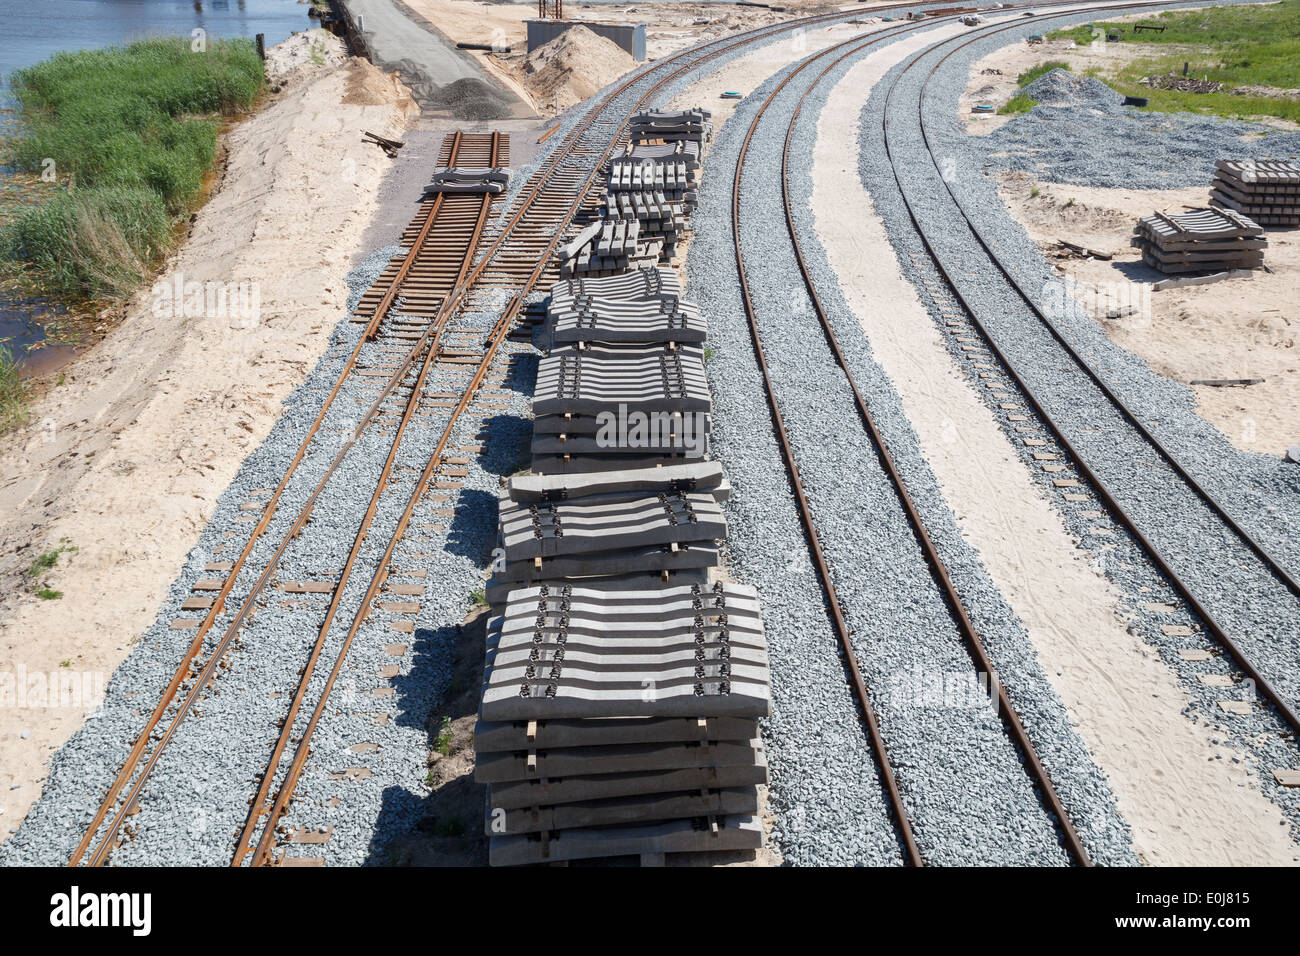 new railway construction - Stock Image